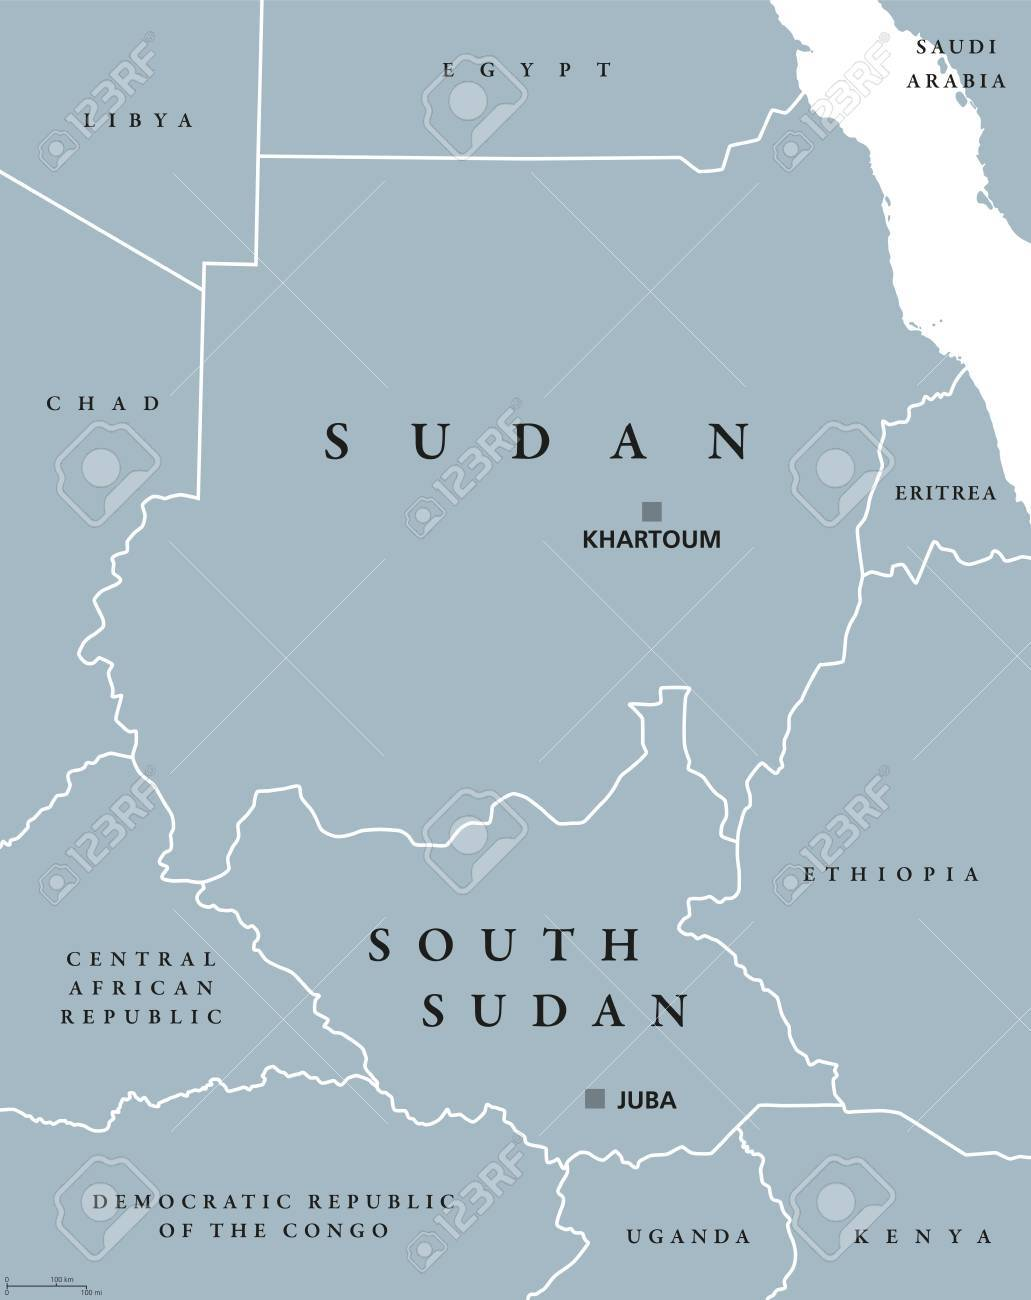 Sudan And South Sudan Political Map With Capitals Khartoum And